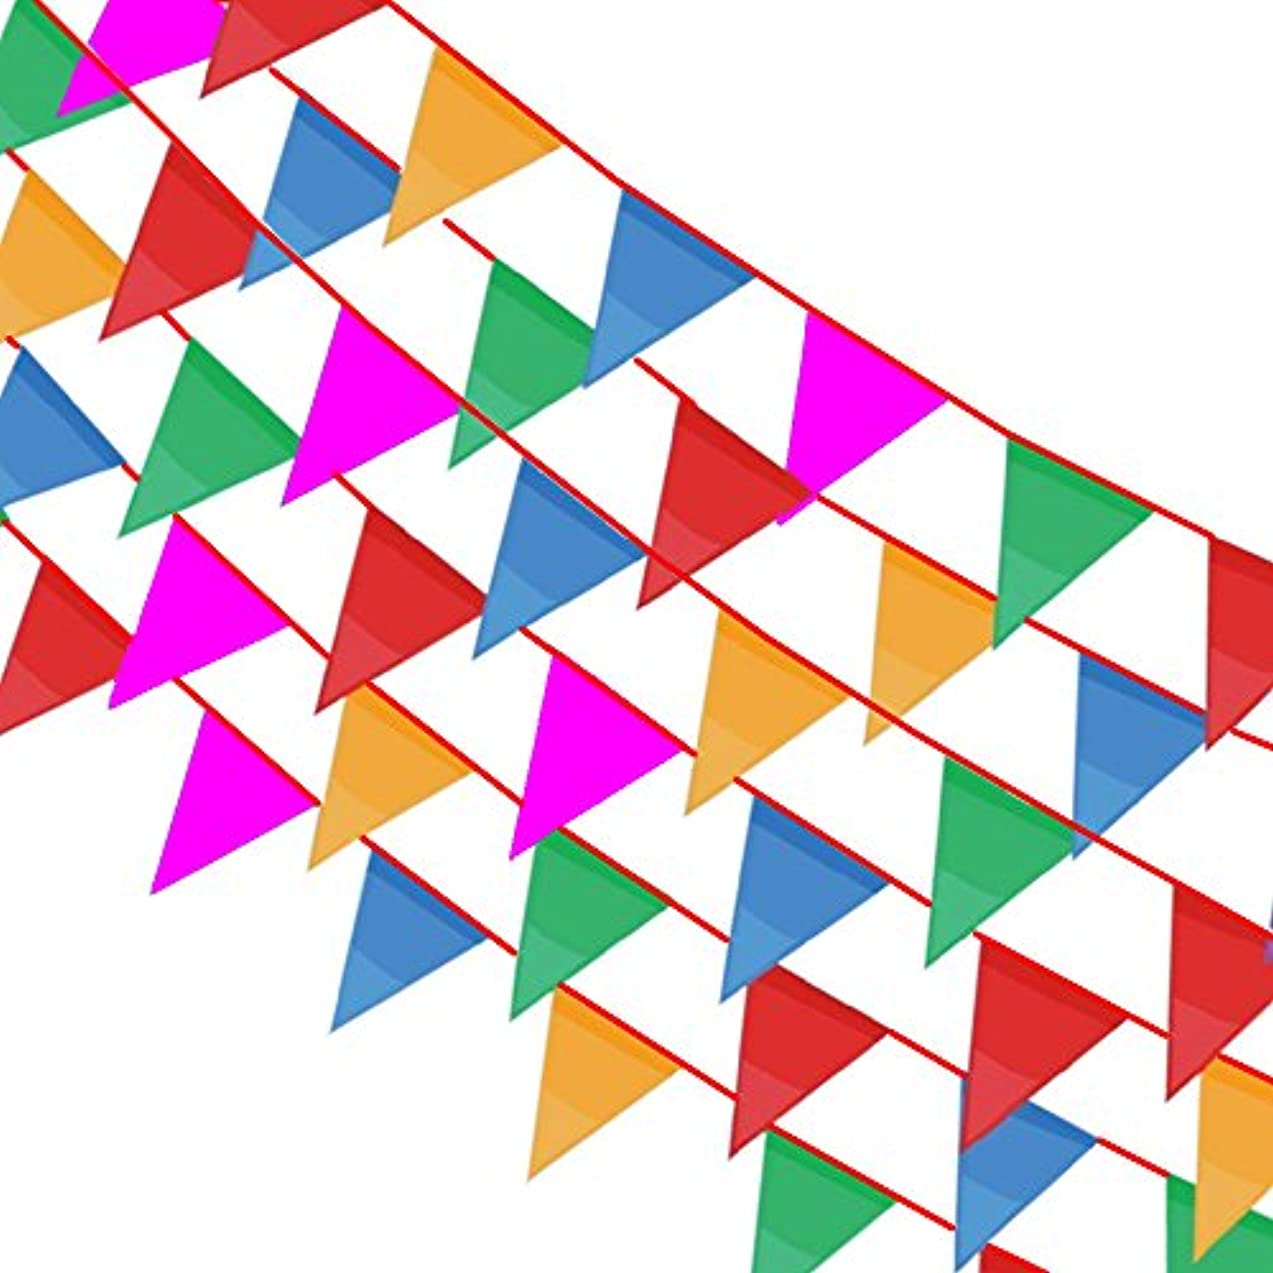 BronaGrand 164 Feet Pennant Banner Flags, Multicolor Pennant String Banner 140pcs Bunting Flags for Party, Birthdays, Wedding, Festivals